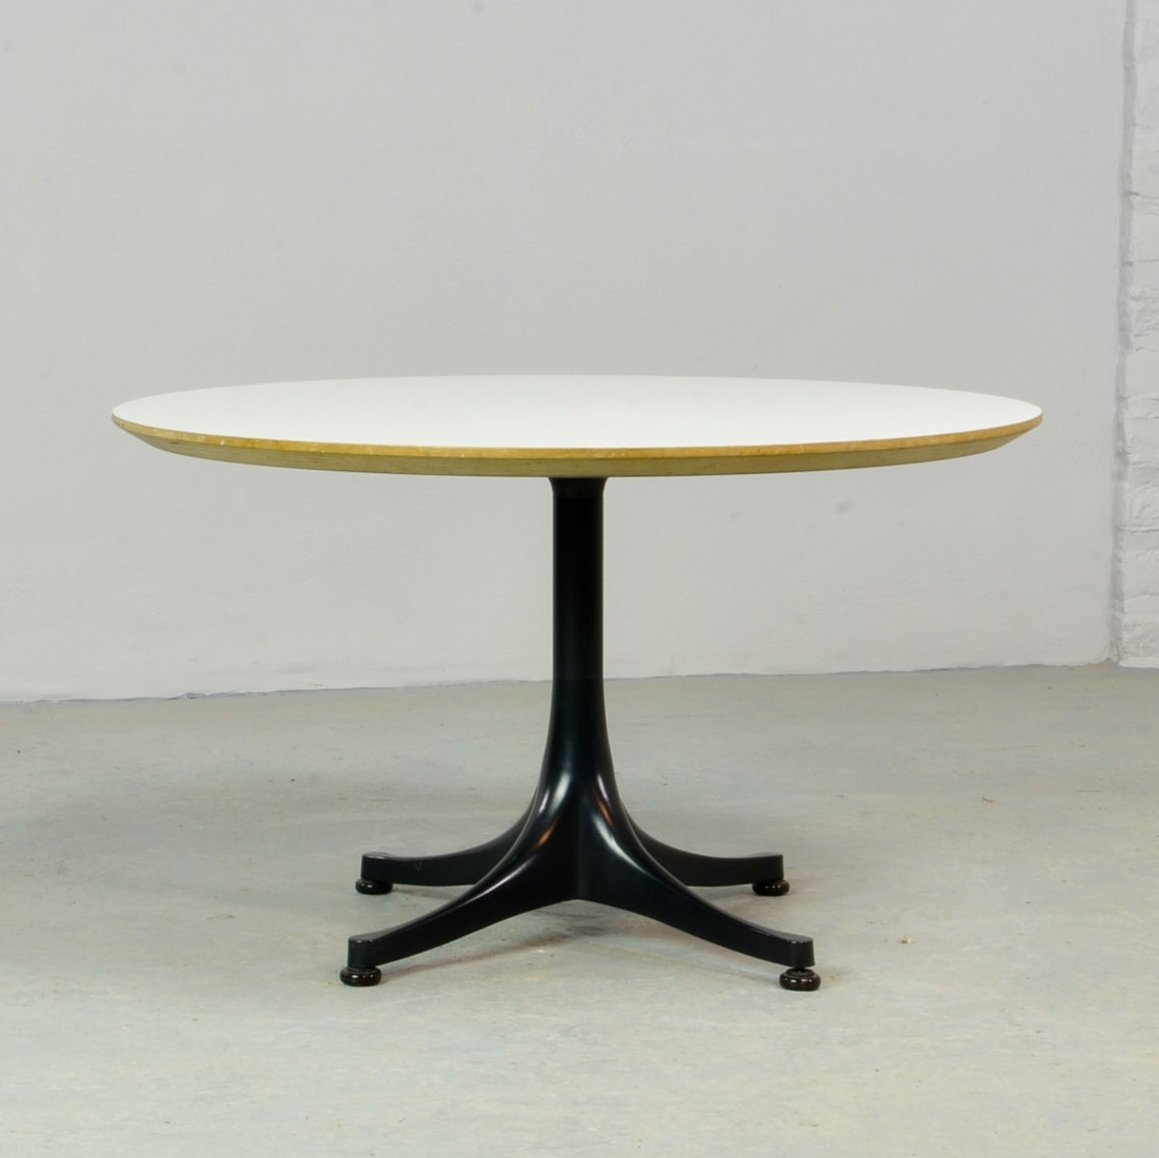 Round Swag Leg Coffee Table By George Nelson For Herman Miller 1960s 74457